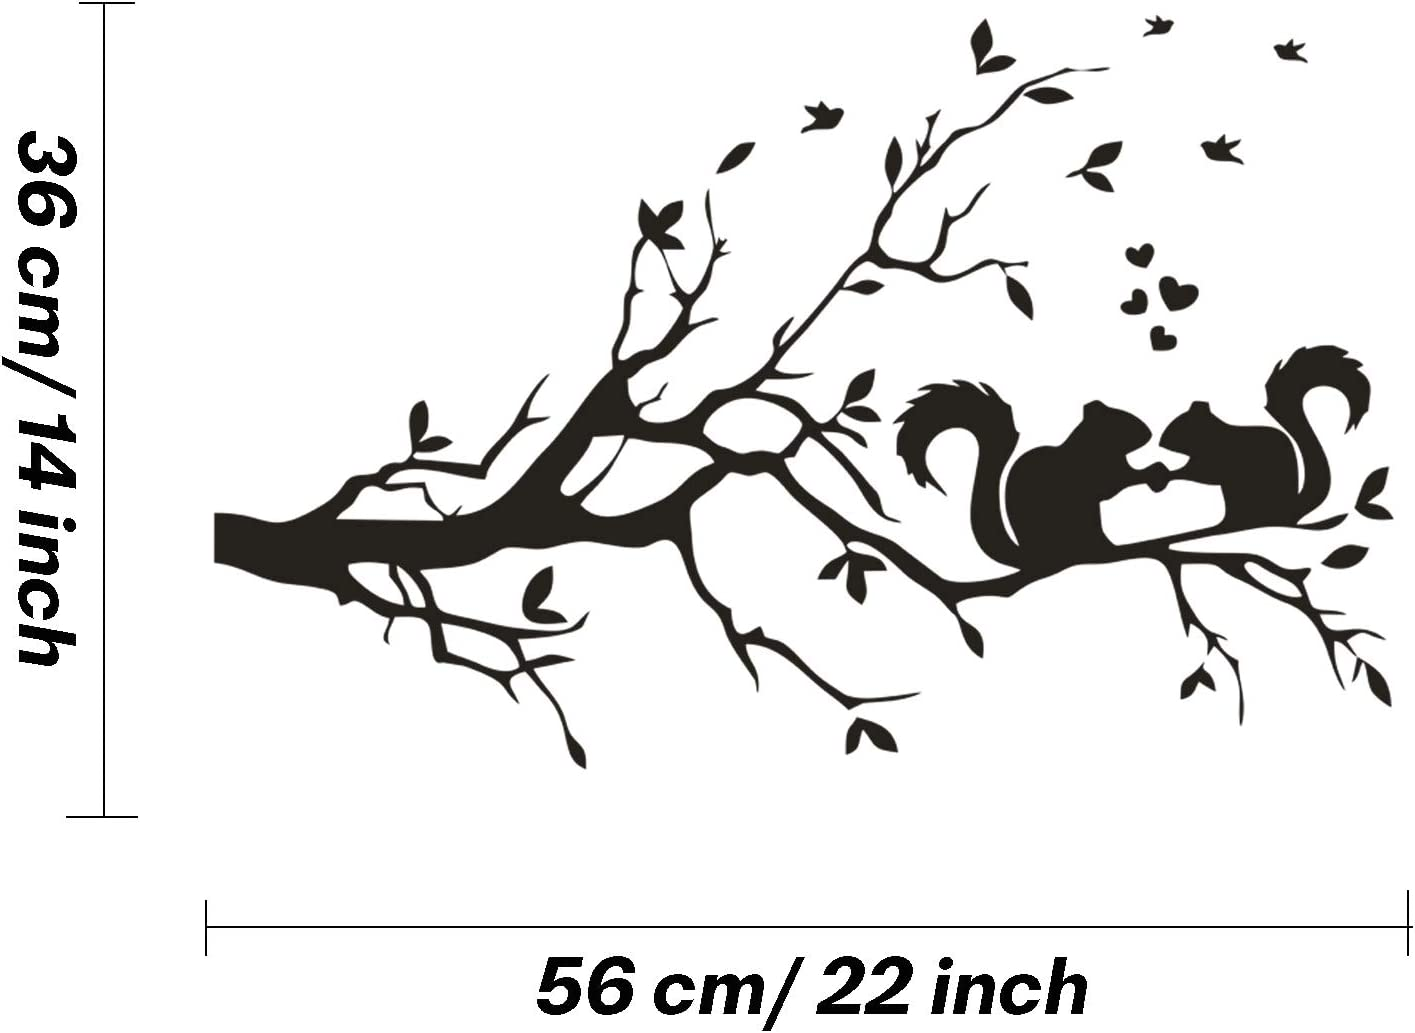 Squirrel On Branch Wall Decal Vinyl Stickers Removable Cute Animal Art DIY Sticker Mural for Bedroom Playroom Dinner Room Living Room Office Home Window Door Decoration